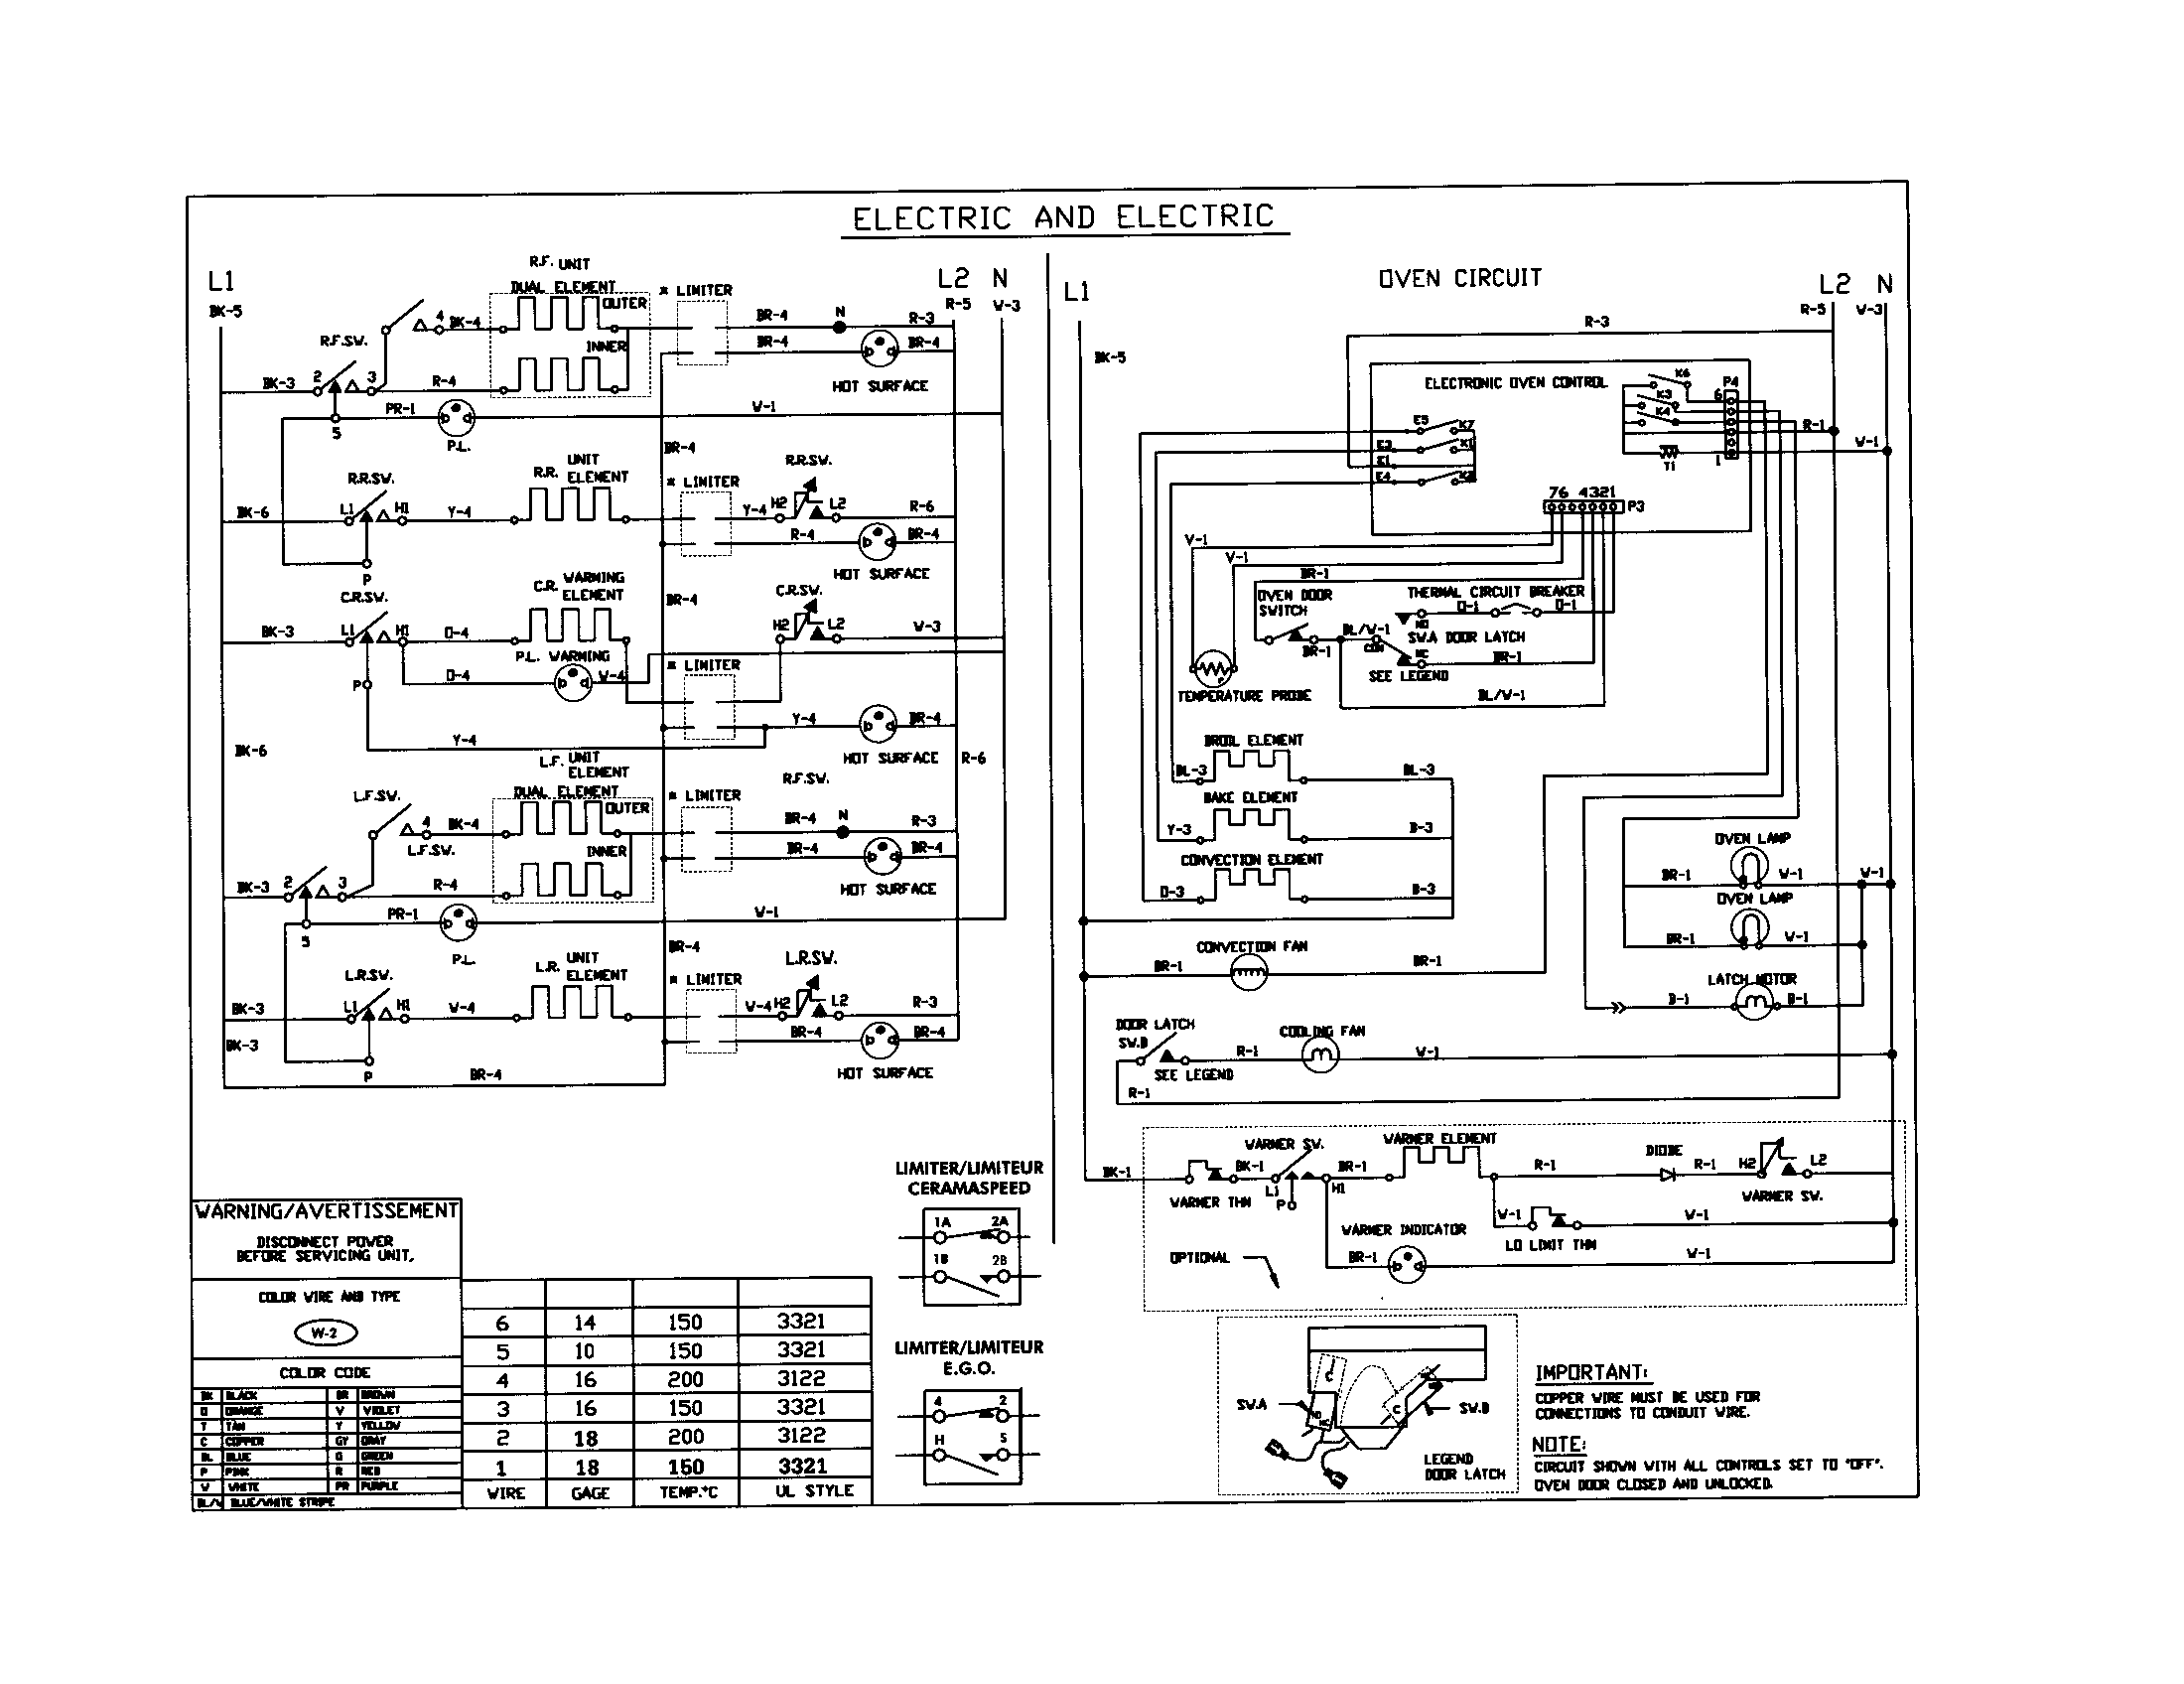 P0050376 00005?resize\=665%2C512 kenmore dryer model 11087872602 wiring diagram kenmore wiring  at soozxer.org